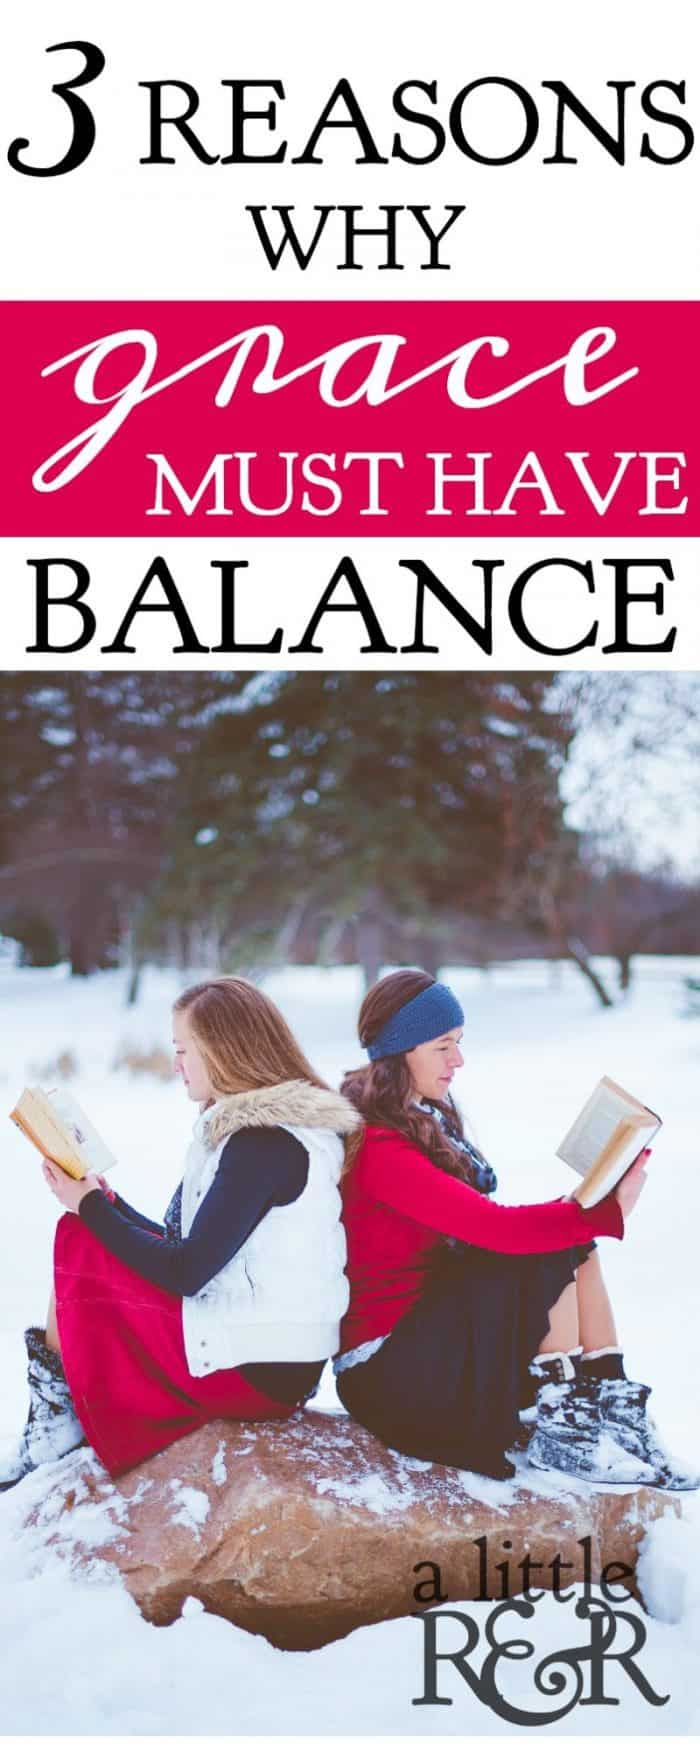 There are 3 things that happen when grace is taught in an out-of-balance way. Here is why grace must have balance in our churches and in our teaching.